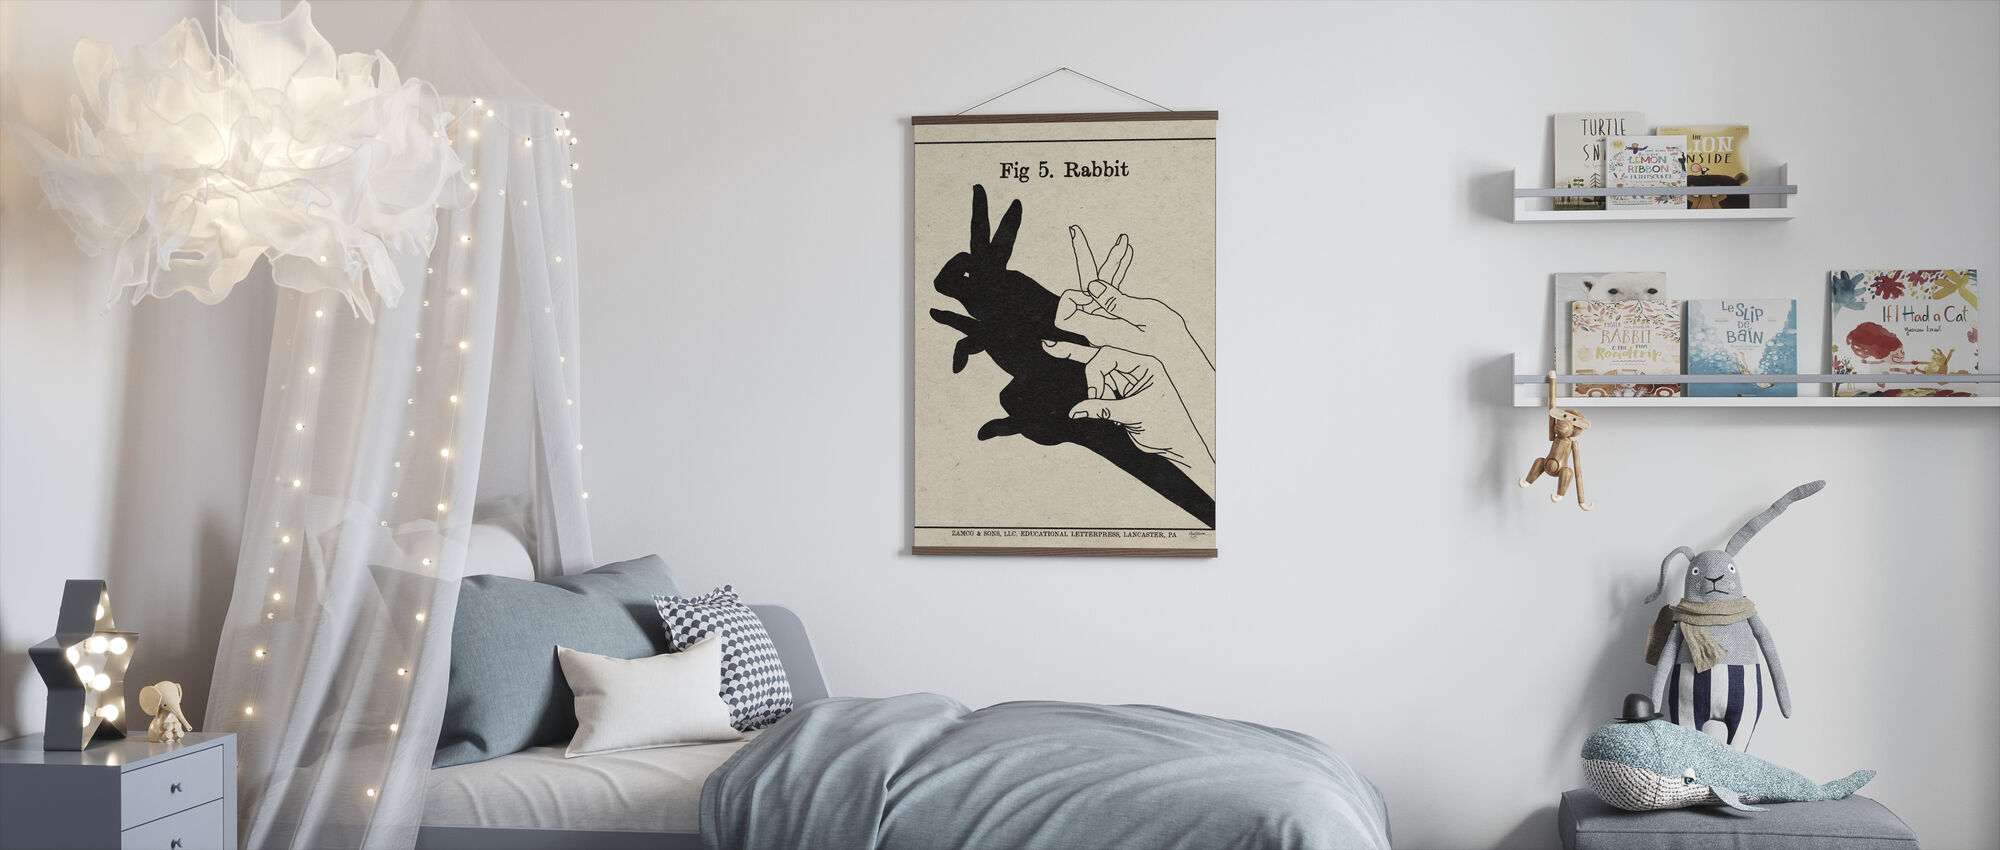 The Art of Shadows - Rabbit - Poster - Kids Room